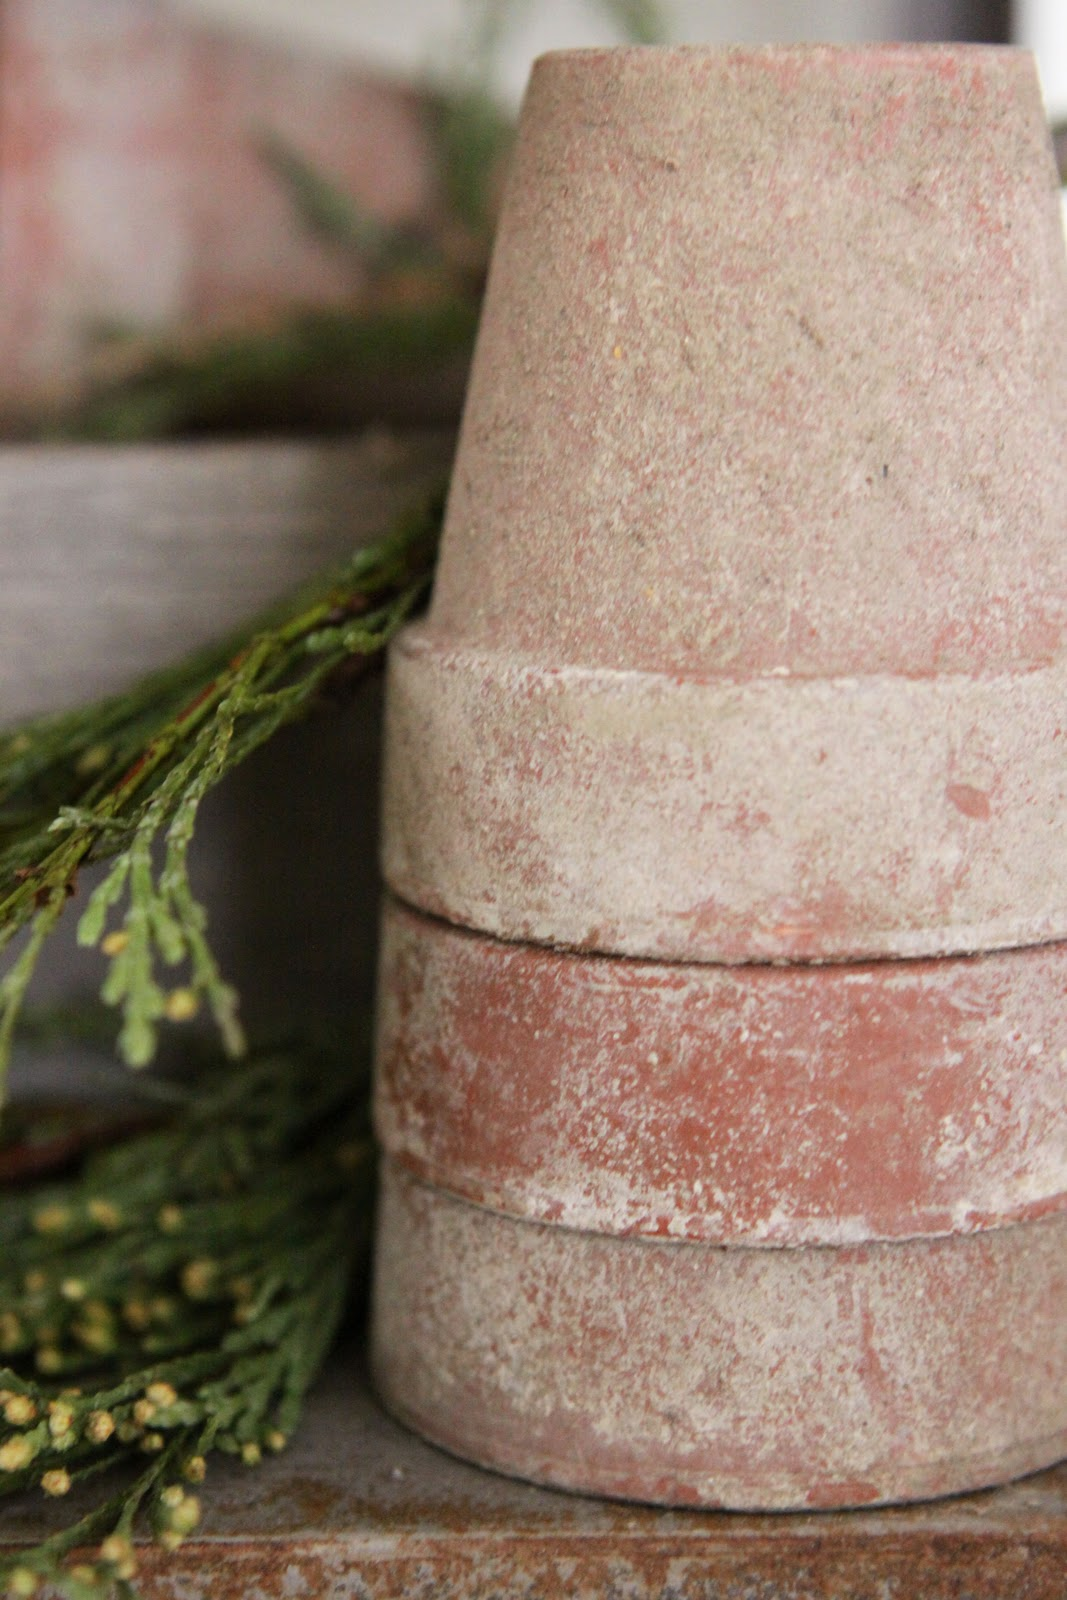 These rustic flower pots look vintage.